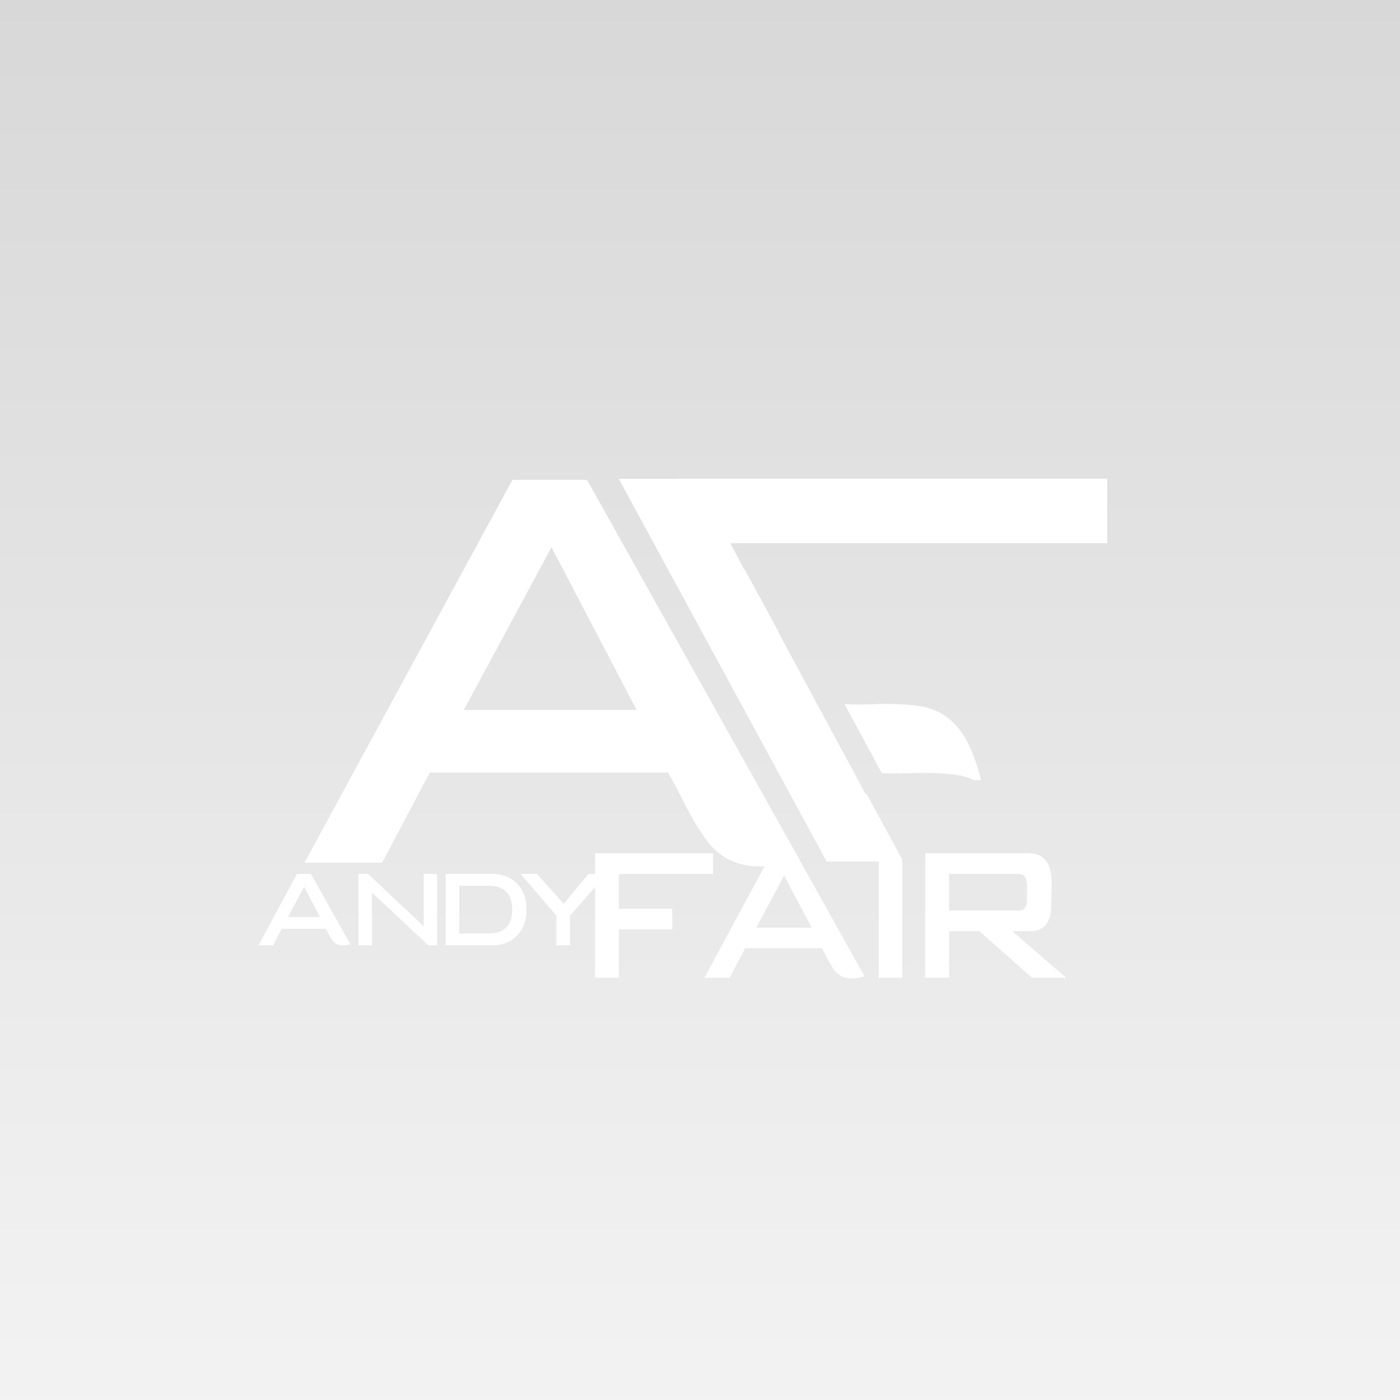 Andy Fair podcast